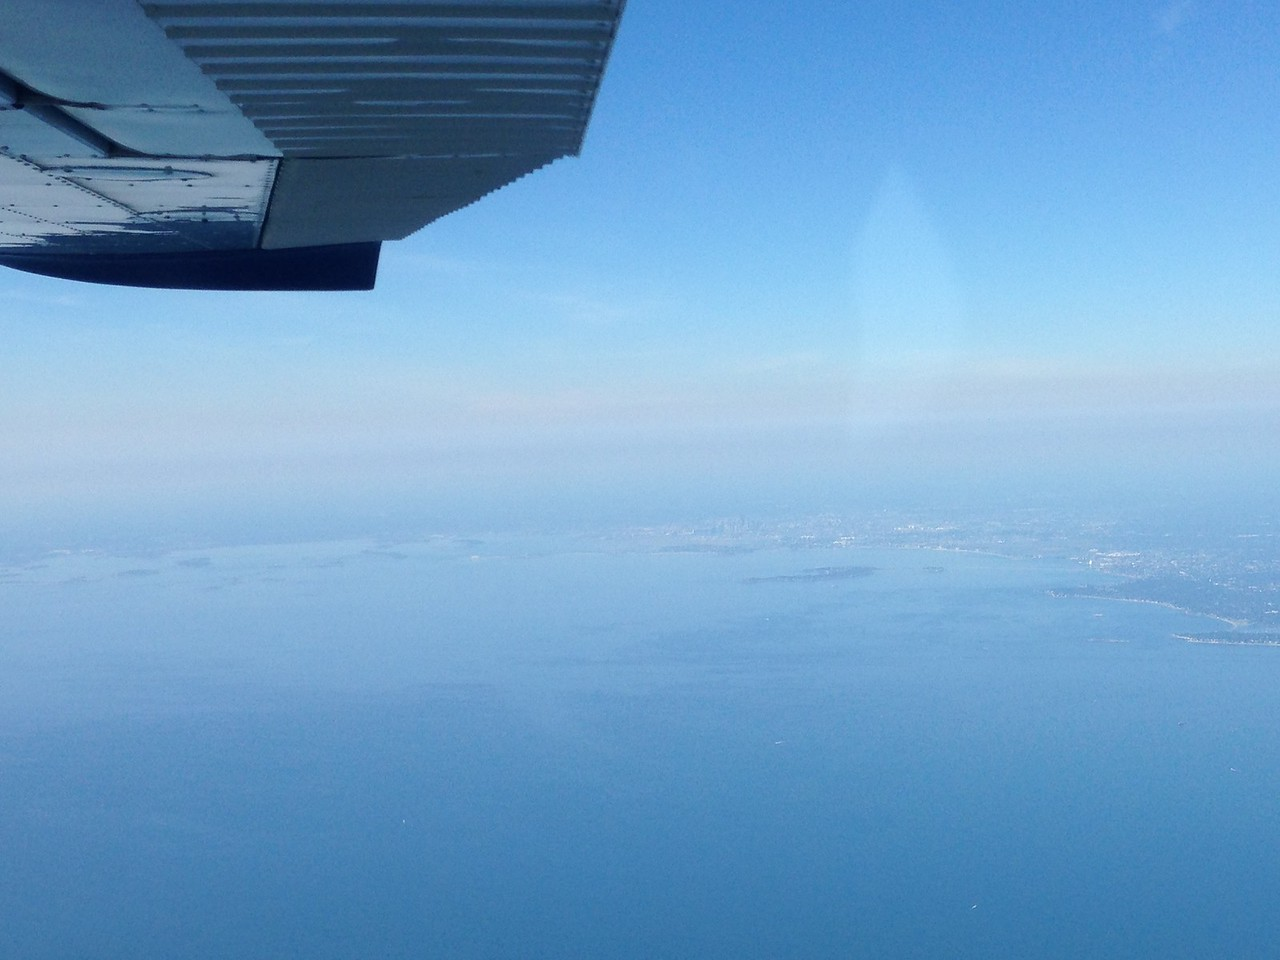 Starting our more over water leg after passing over Gloucester.